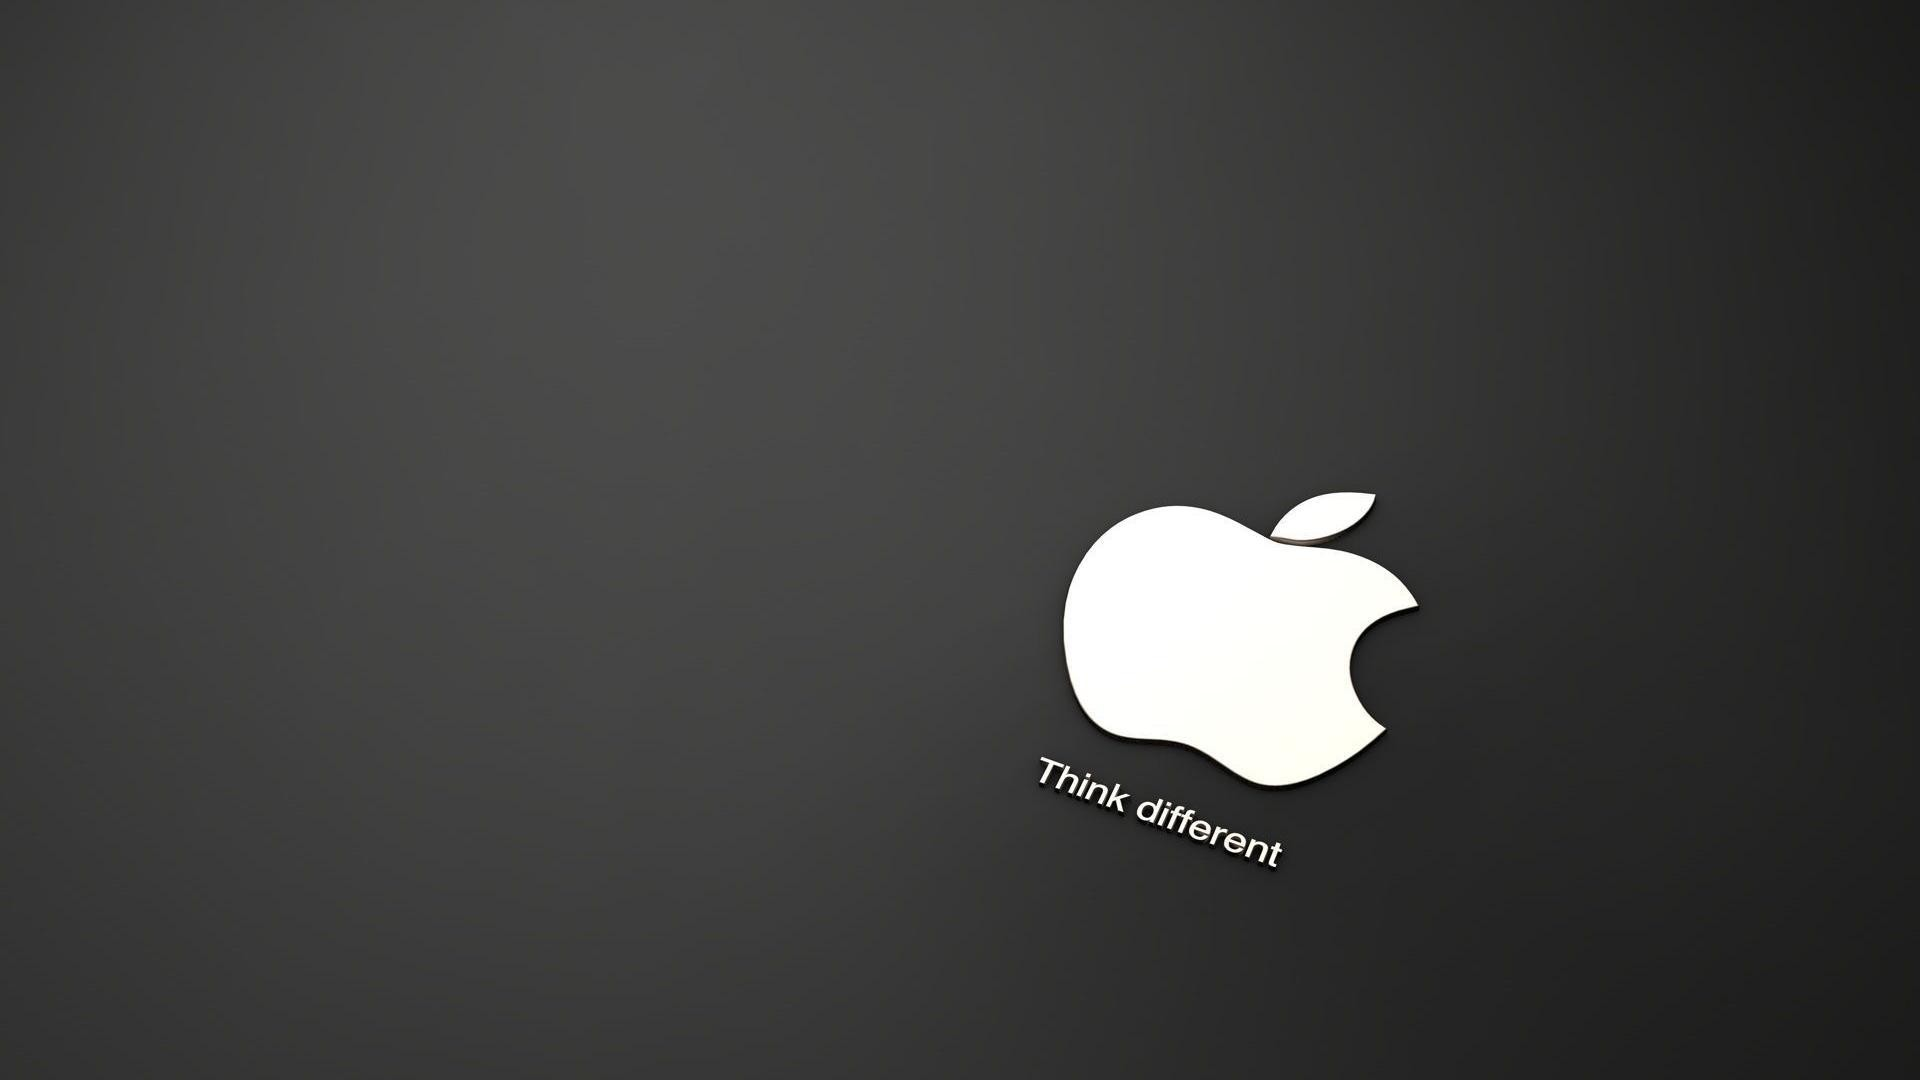 Black And White Apple Logo Wallpaper